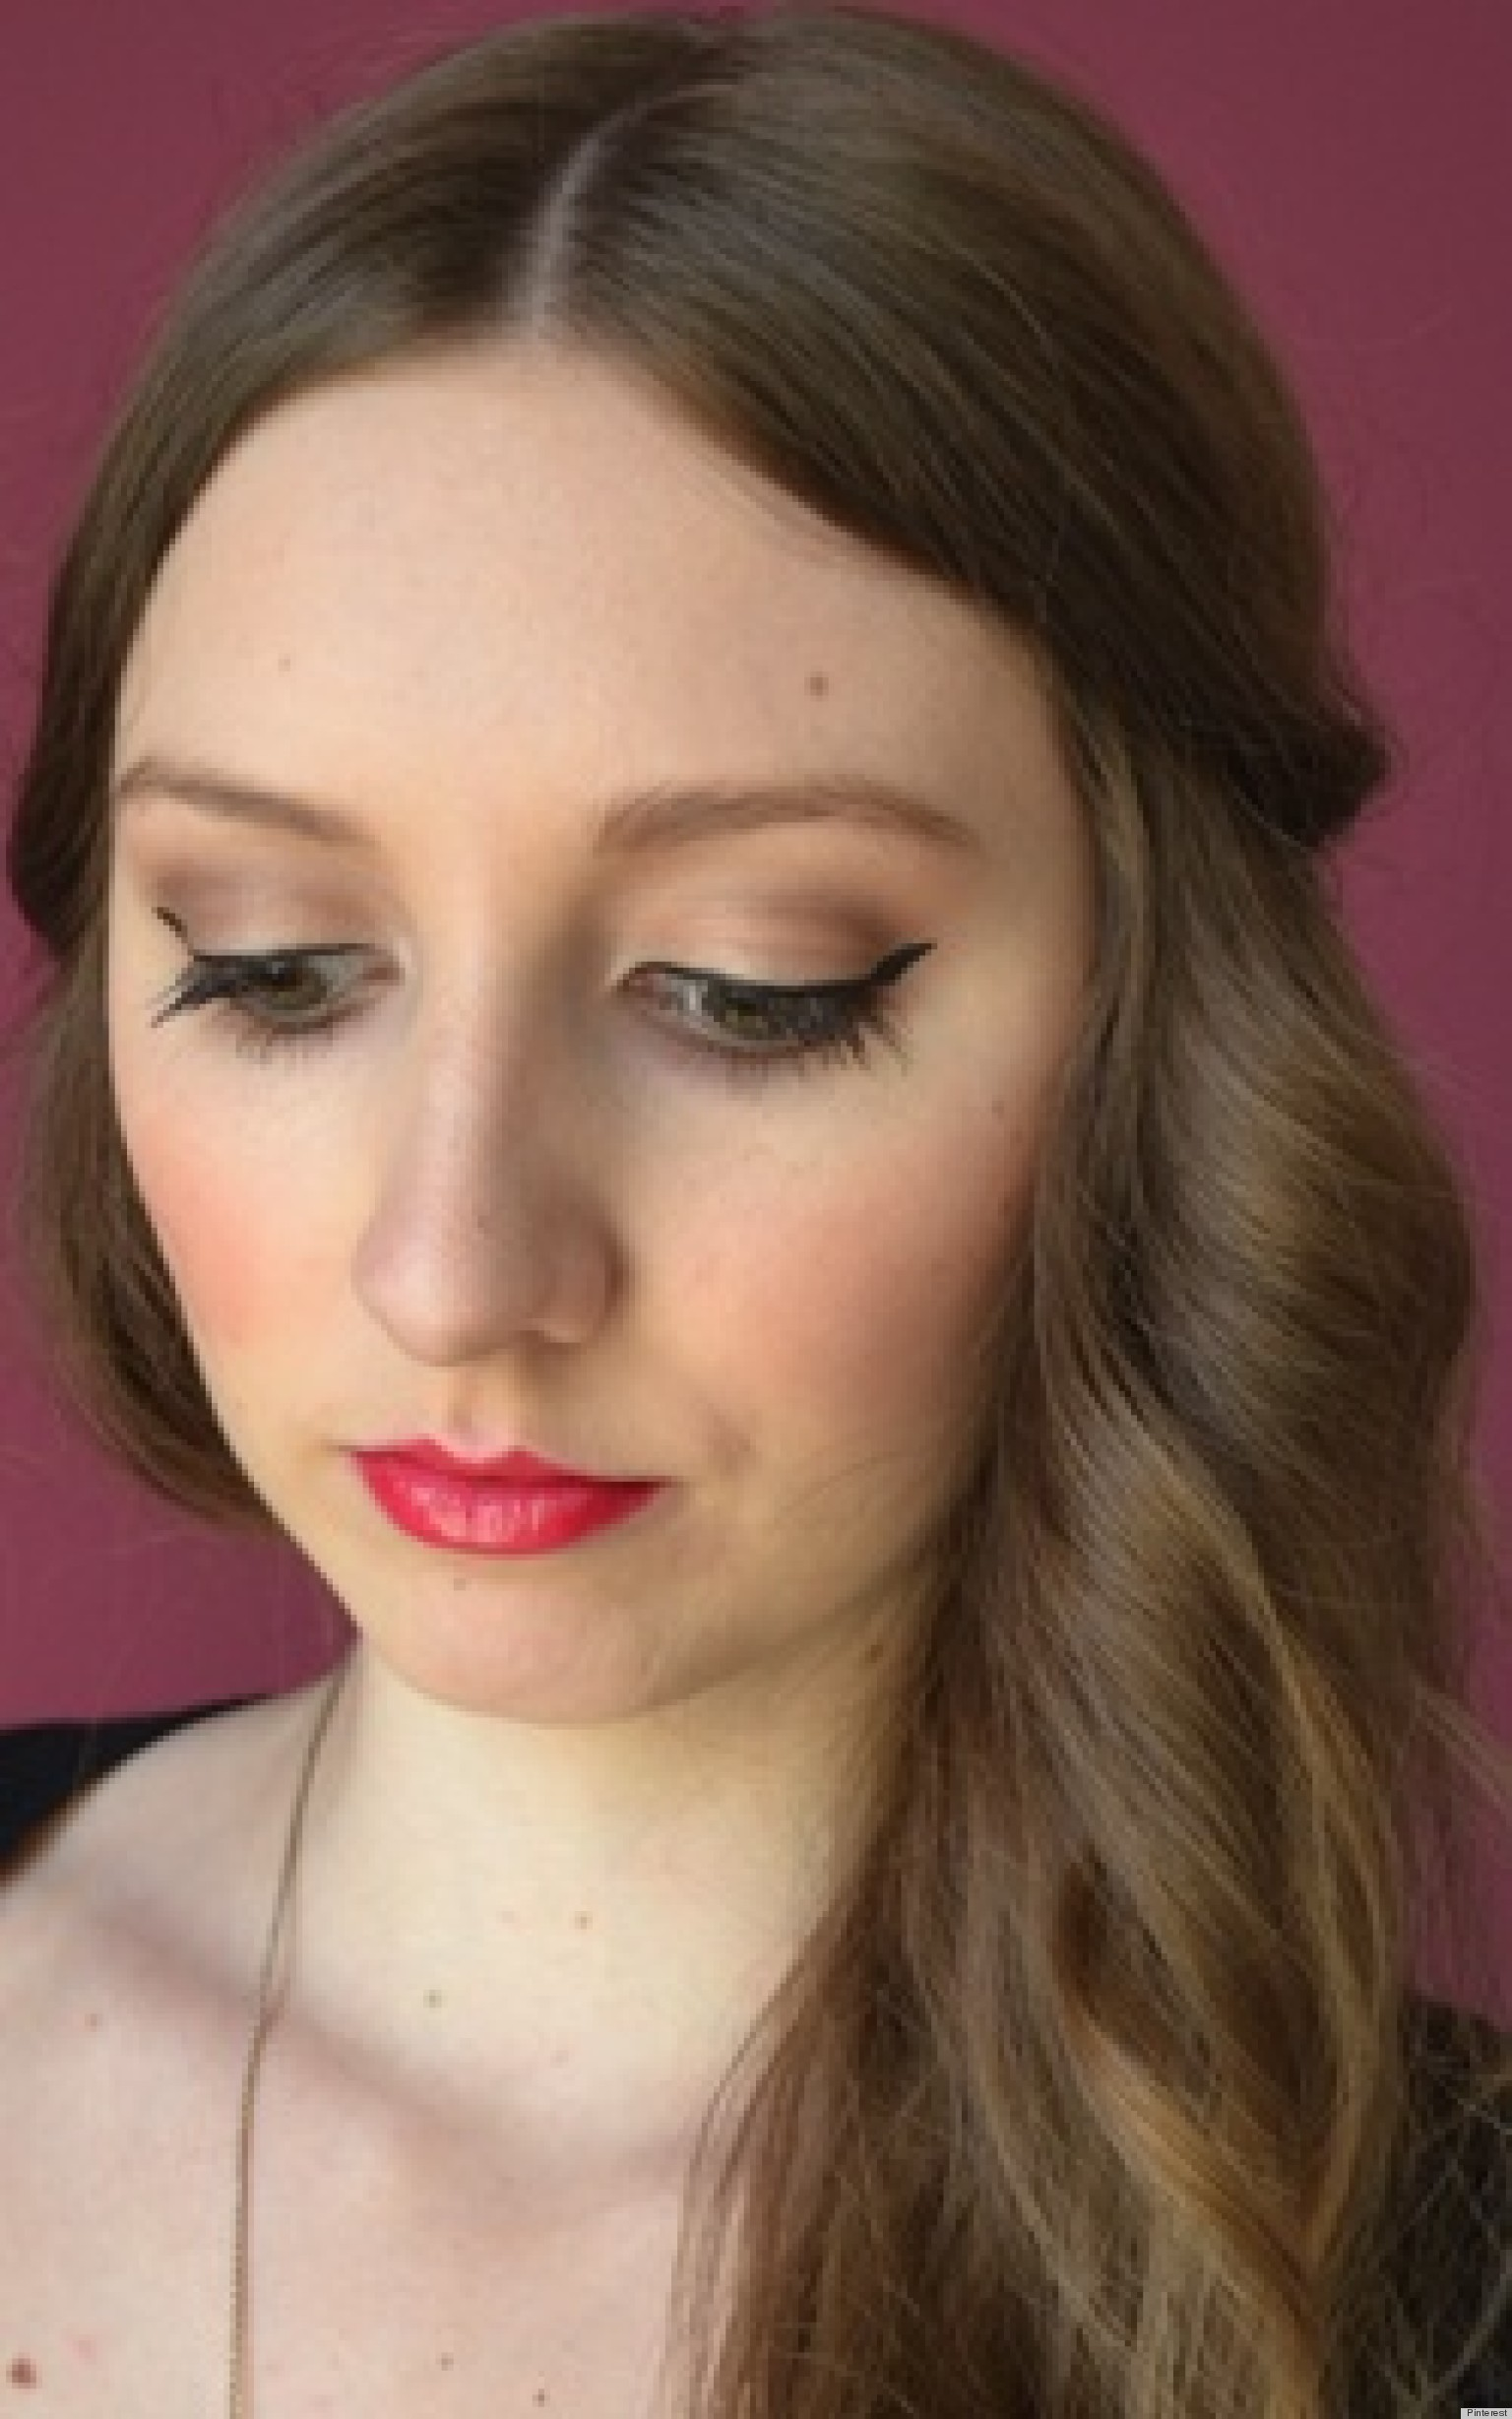 7 Last Minute Valentineu0027s Day Makeup Looks From Pinterest (PHOTOS) |  HuffPost